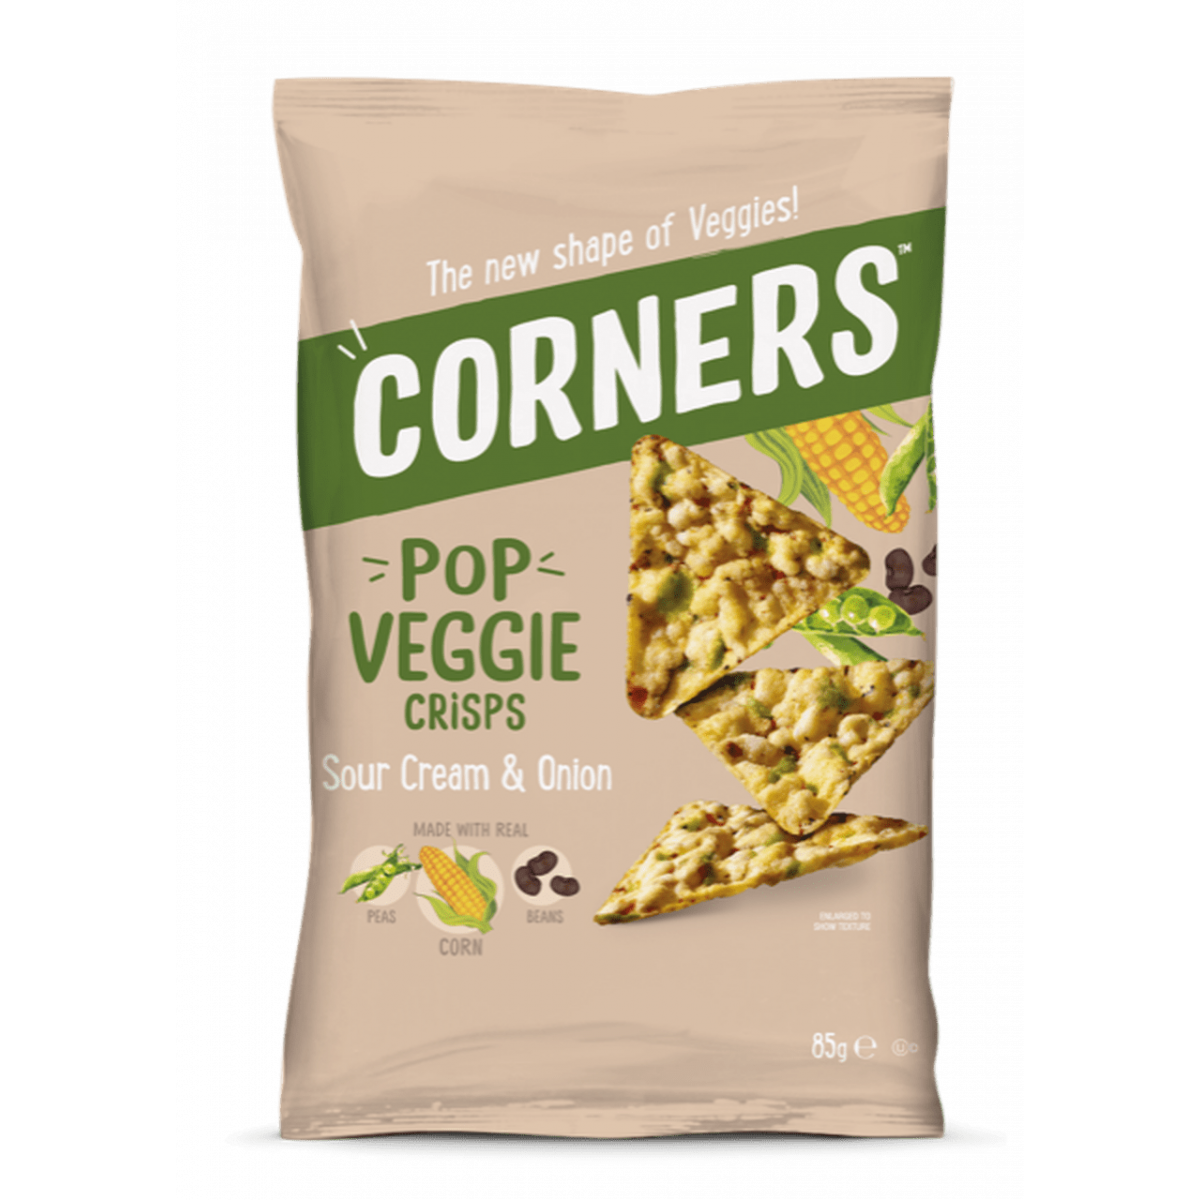 Pop Veggie Crisps Sour Cream & Onion